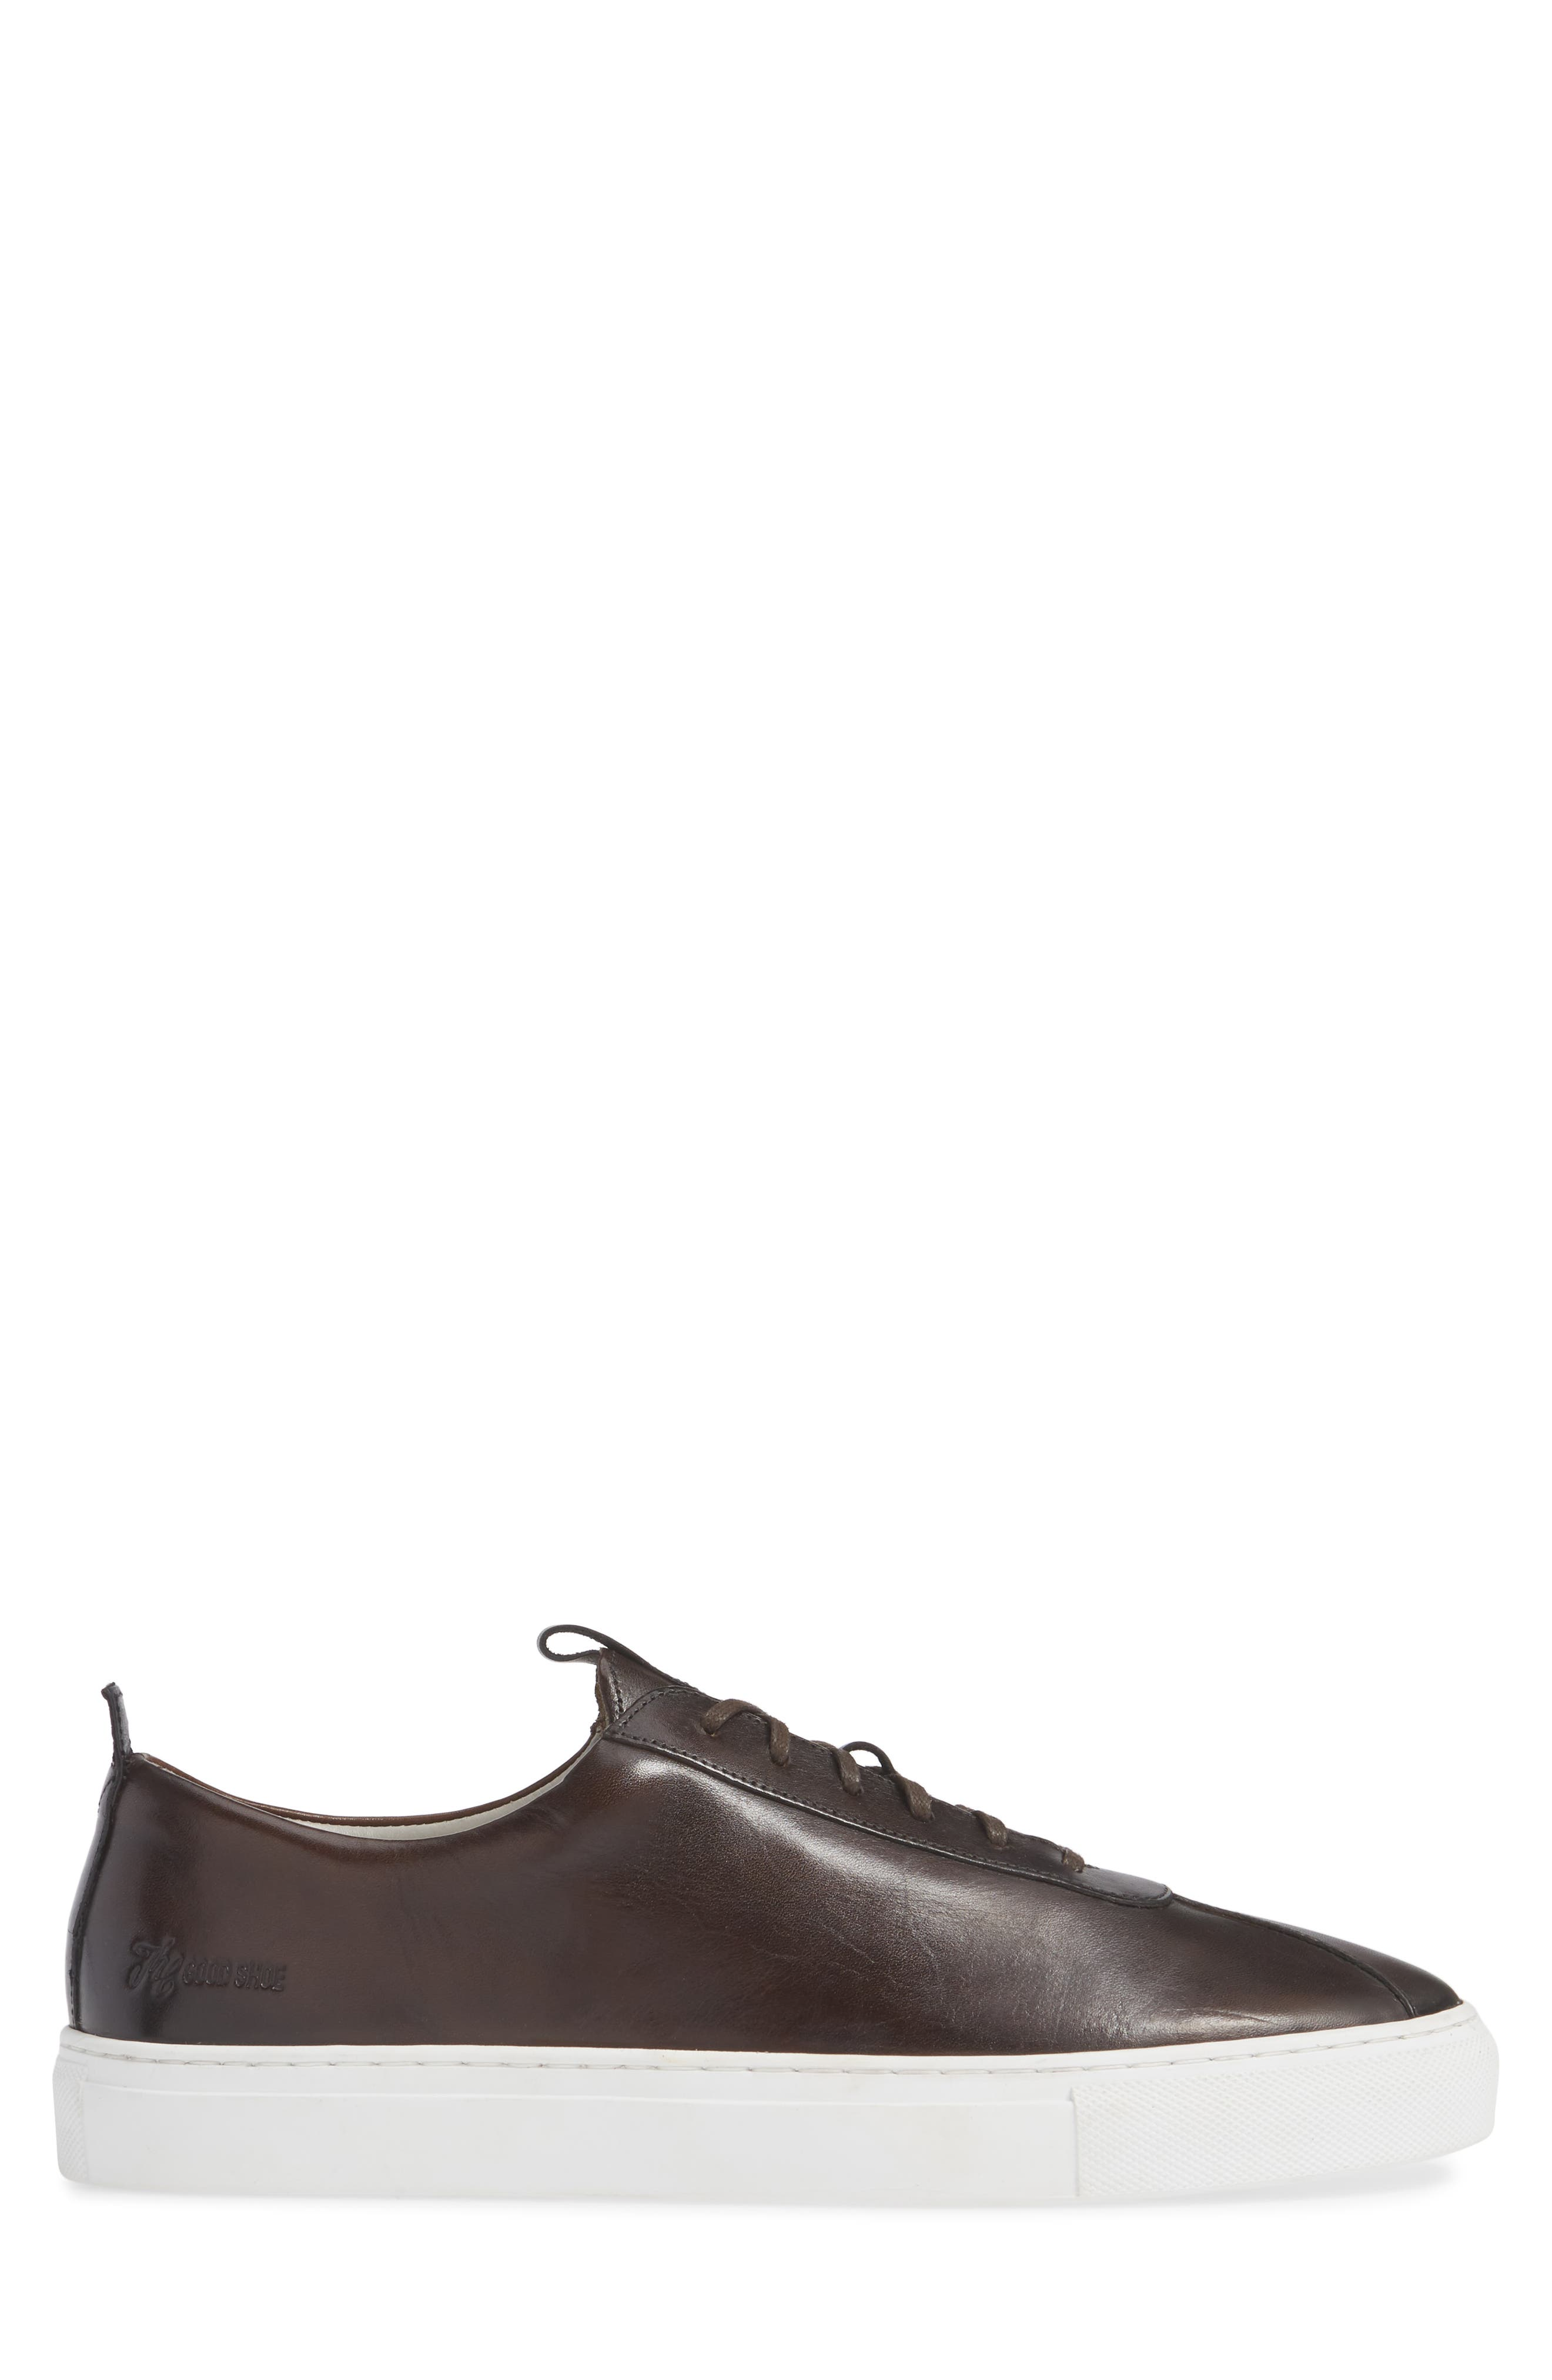 GRENSON,                             Low Top Sneaker,                             Alternate thumbnail 3, color,                             BROWN HAND PAINTED